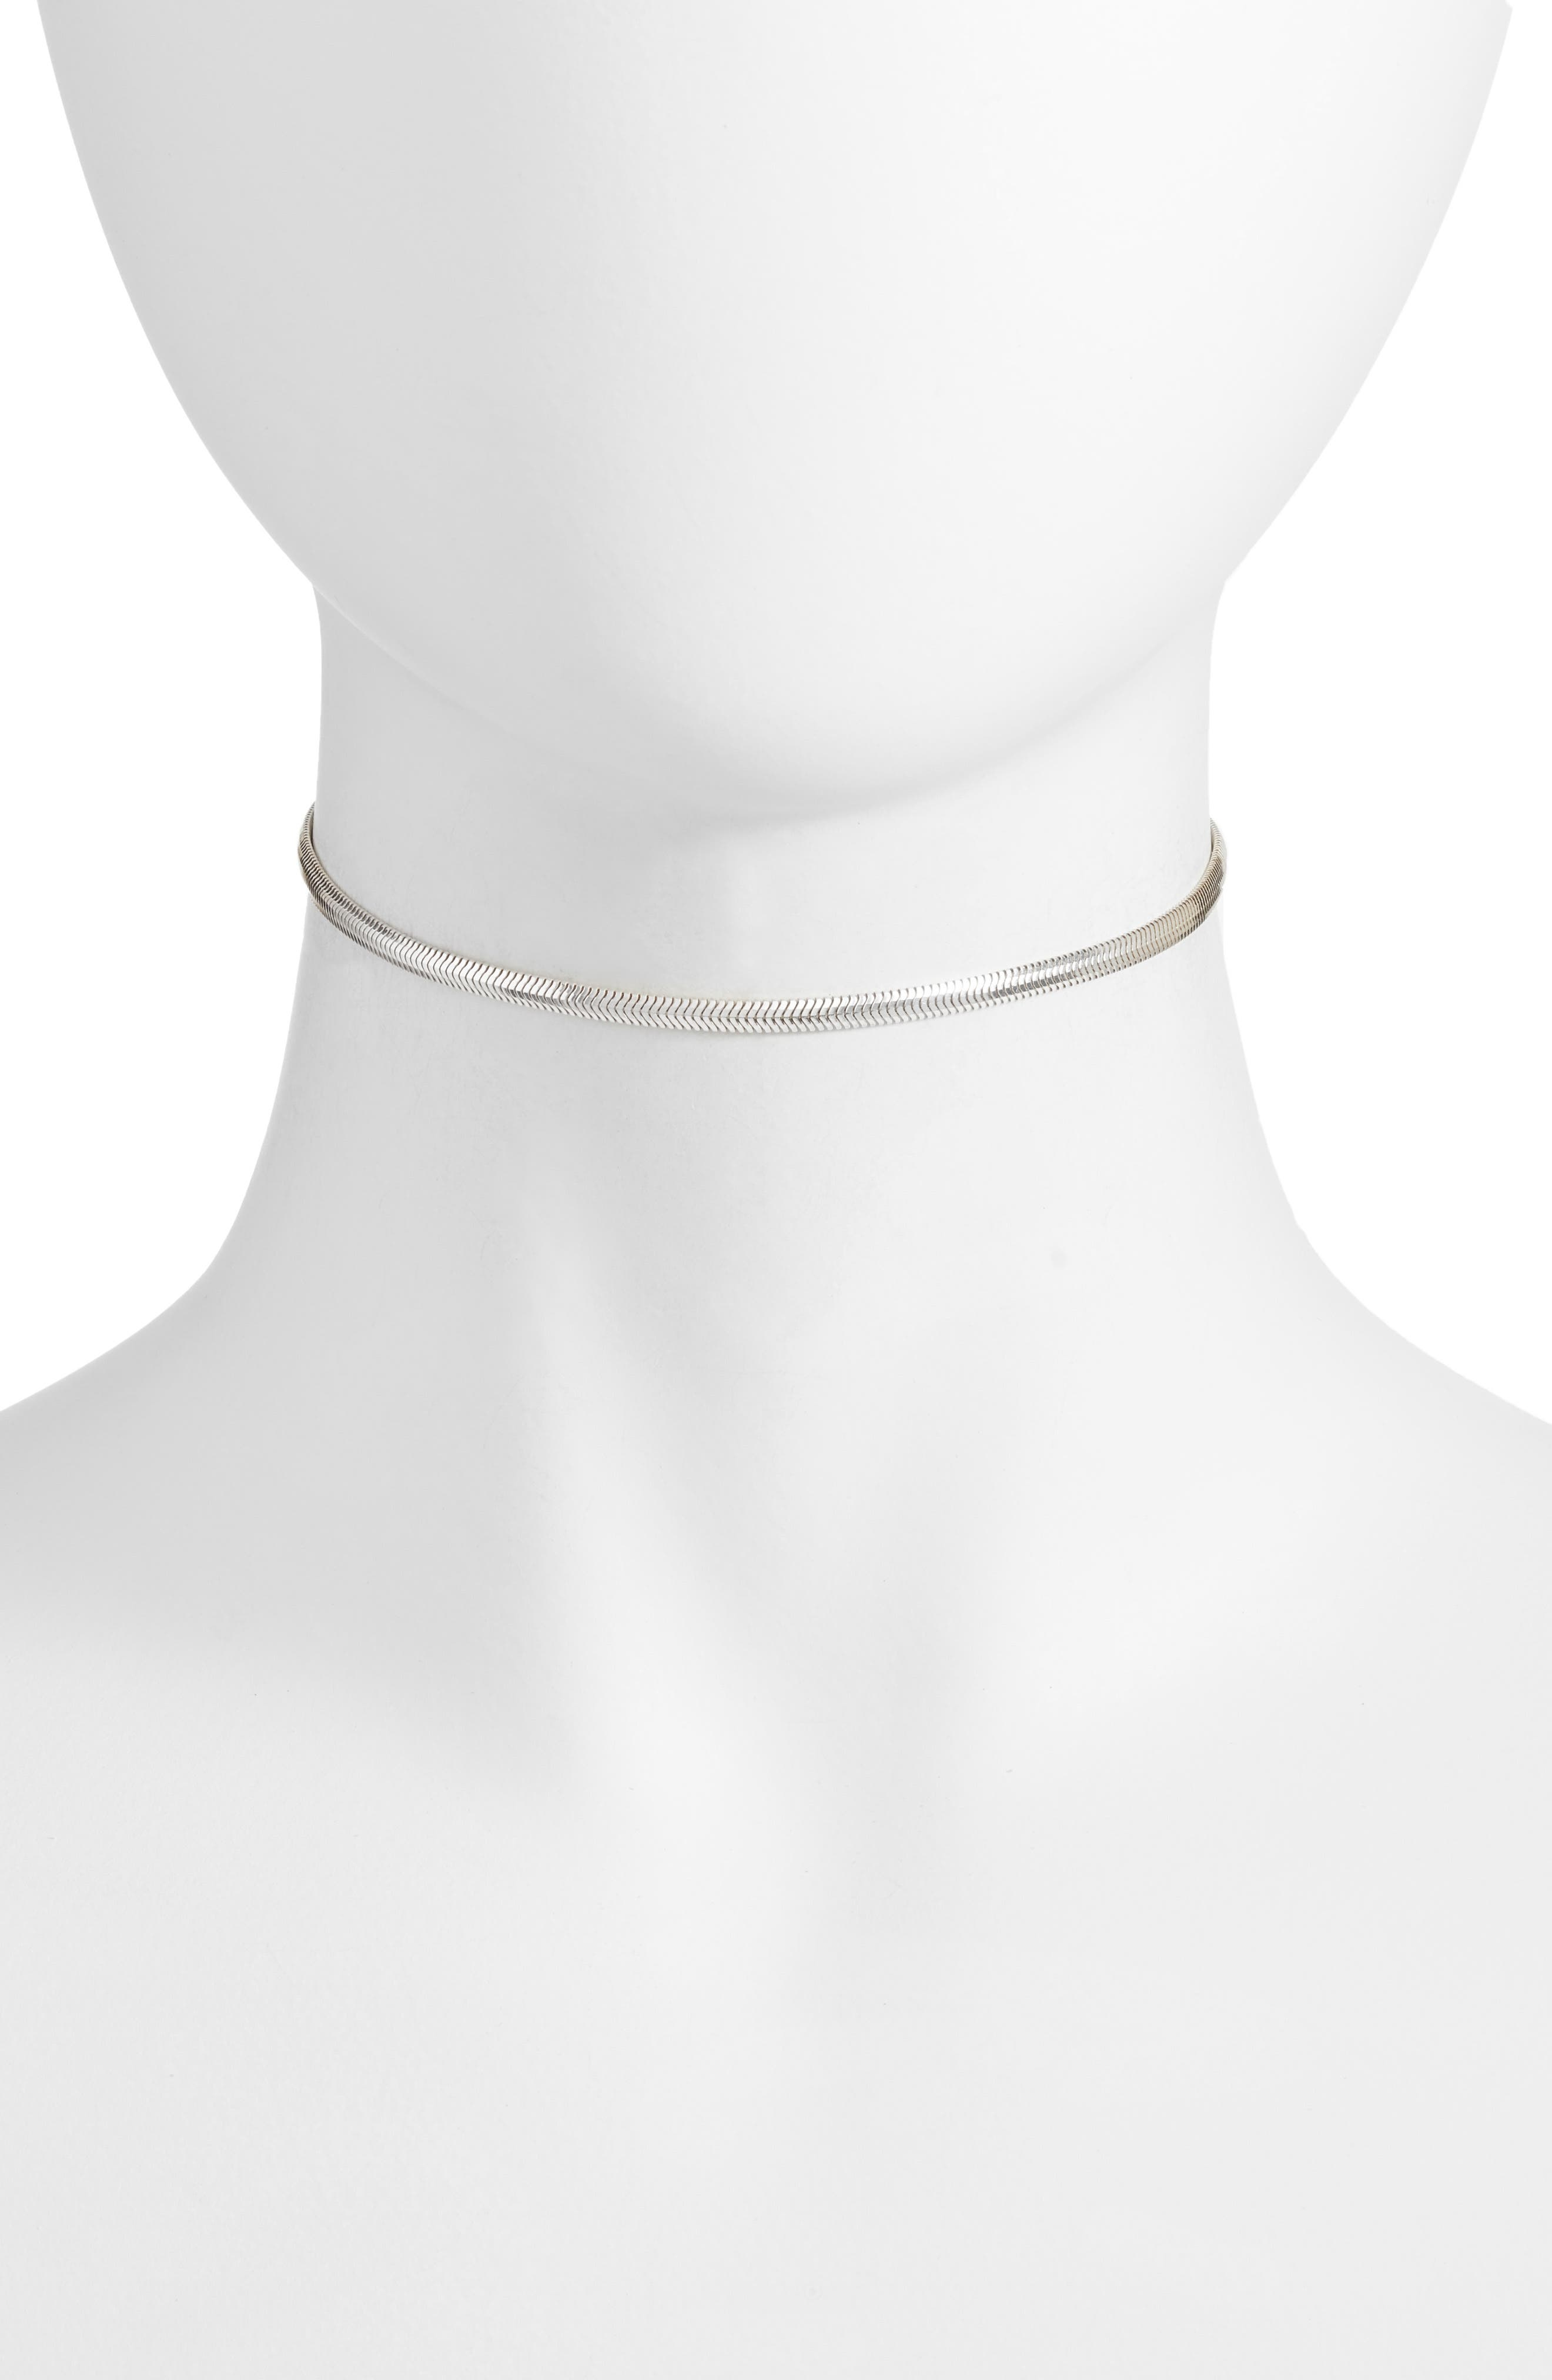 Snake Chain Choker,                             Main thumbnail 1, color,                             Silver